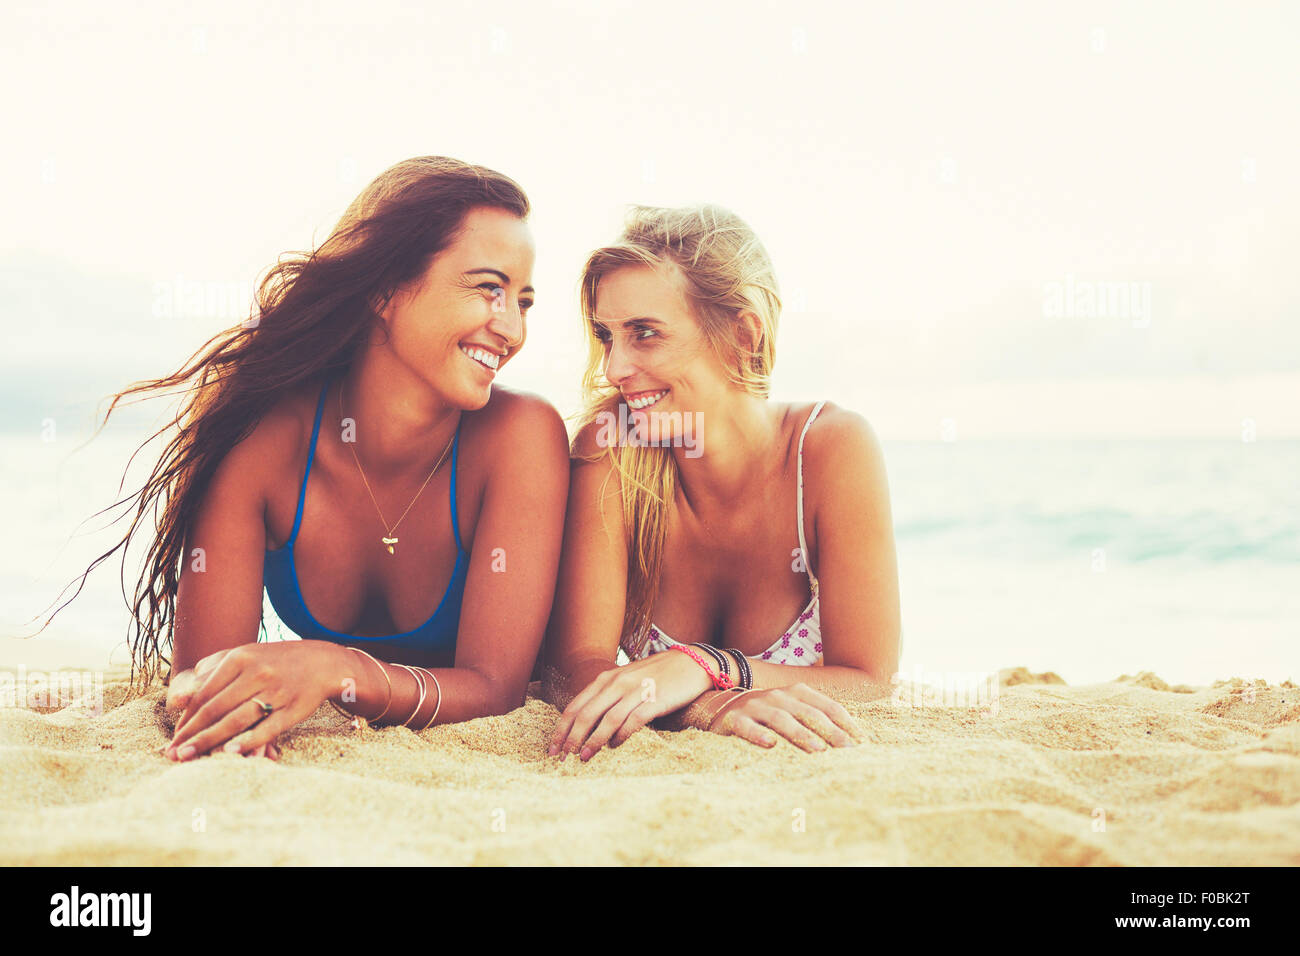 Summer Lifestyle, Girls Day at the Beach. Friends Hanging out at the Beach at Sunset Stock Photo